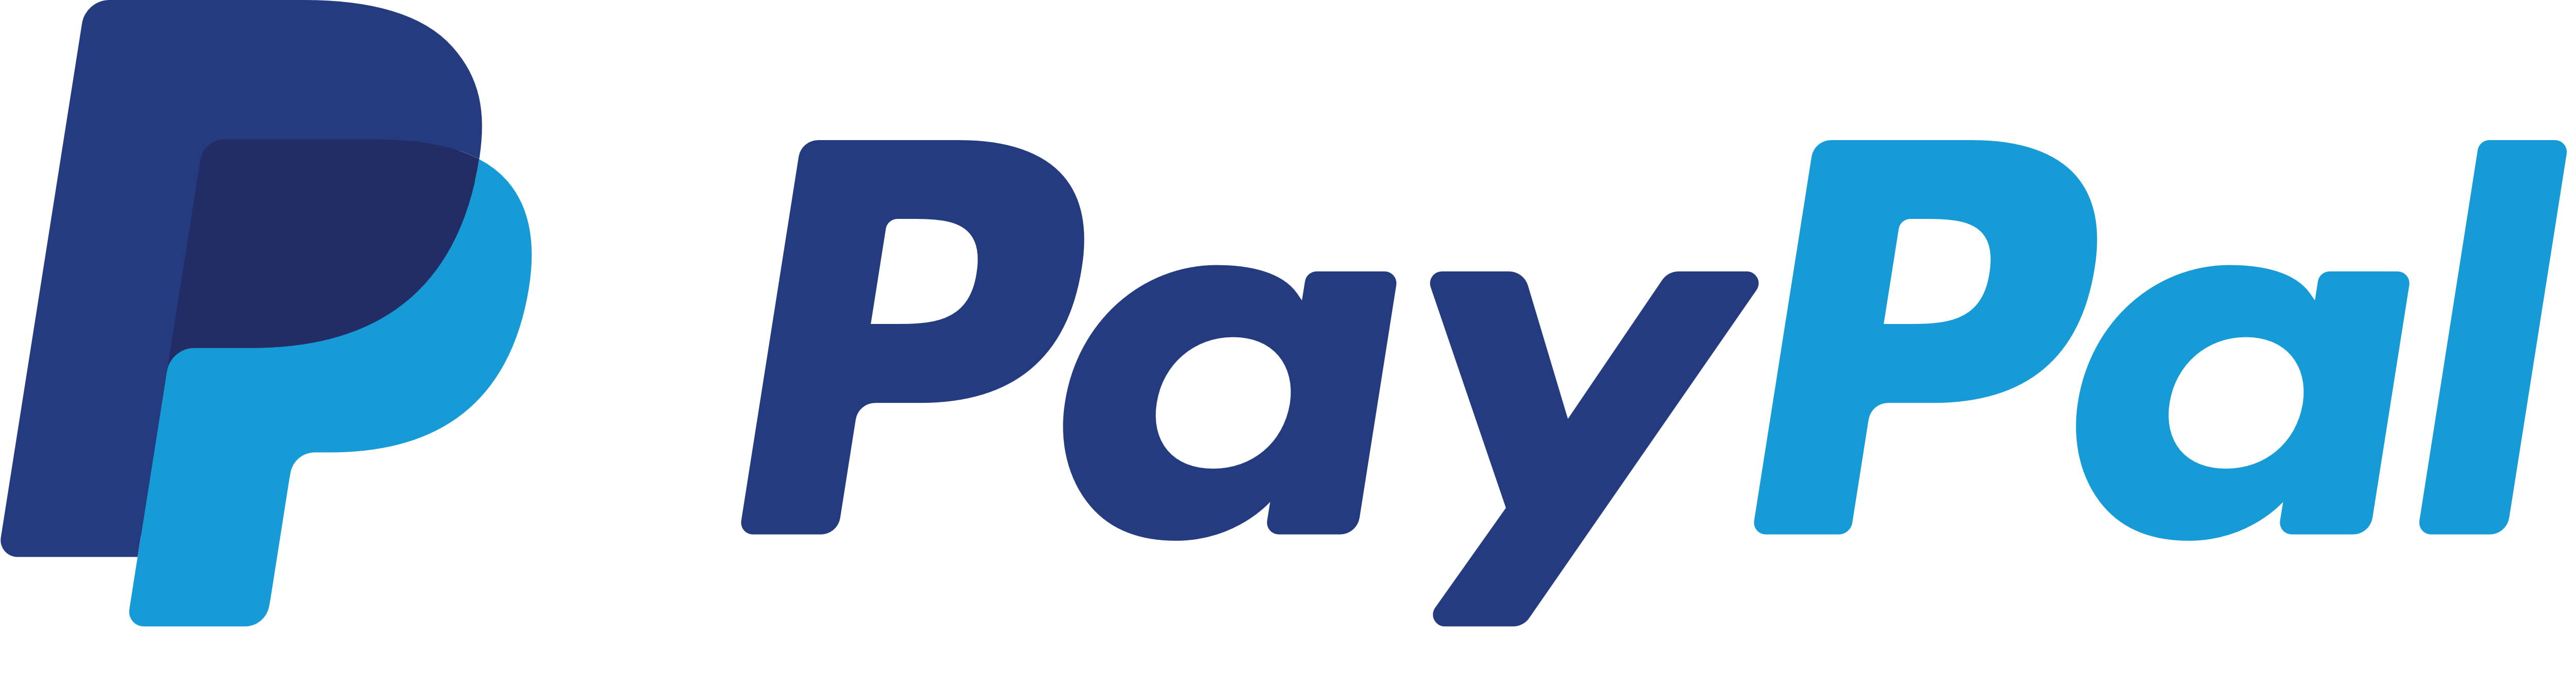 Paypal Integration by Expressive Media